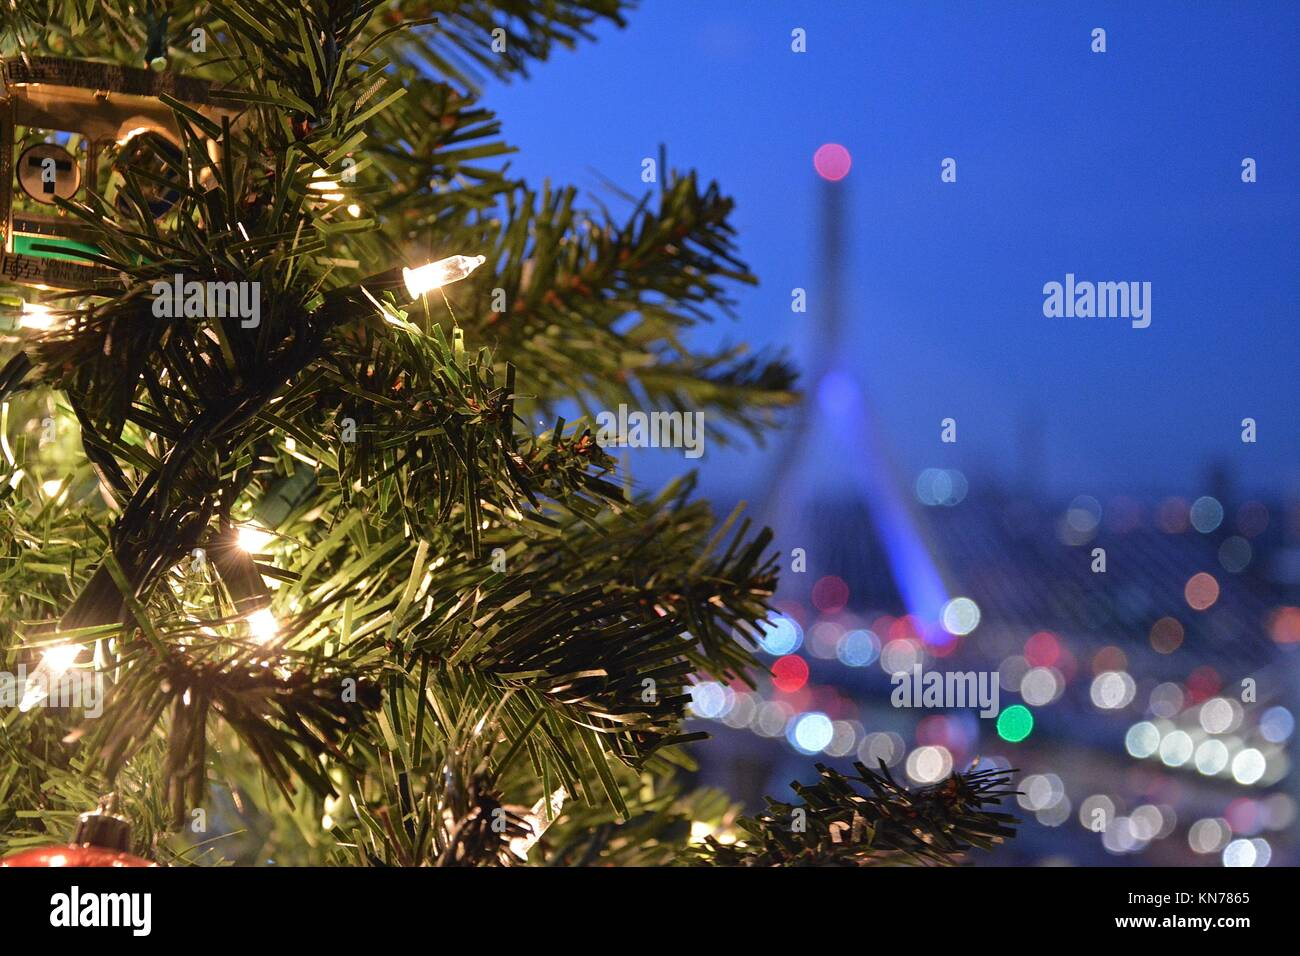 Boston Christmas Tree Stockfotos & Boston Christmas Tree Bilder - Alamy